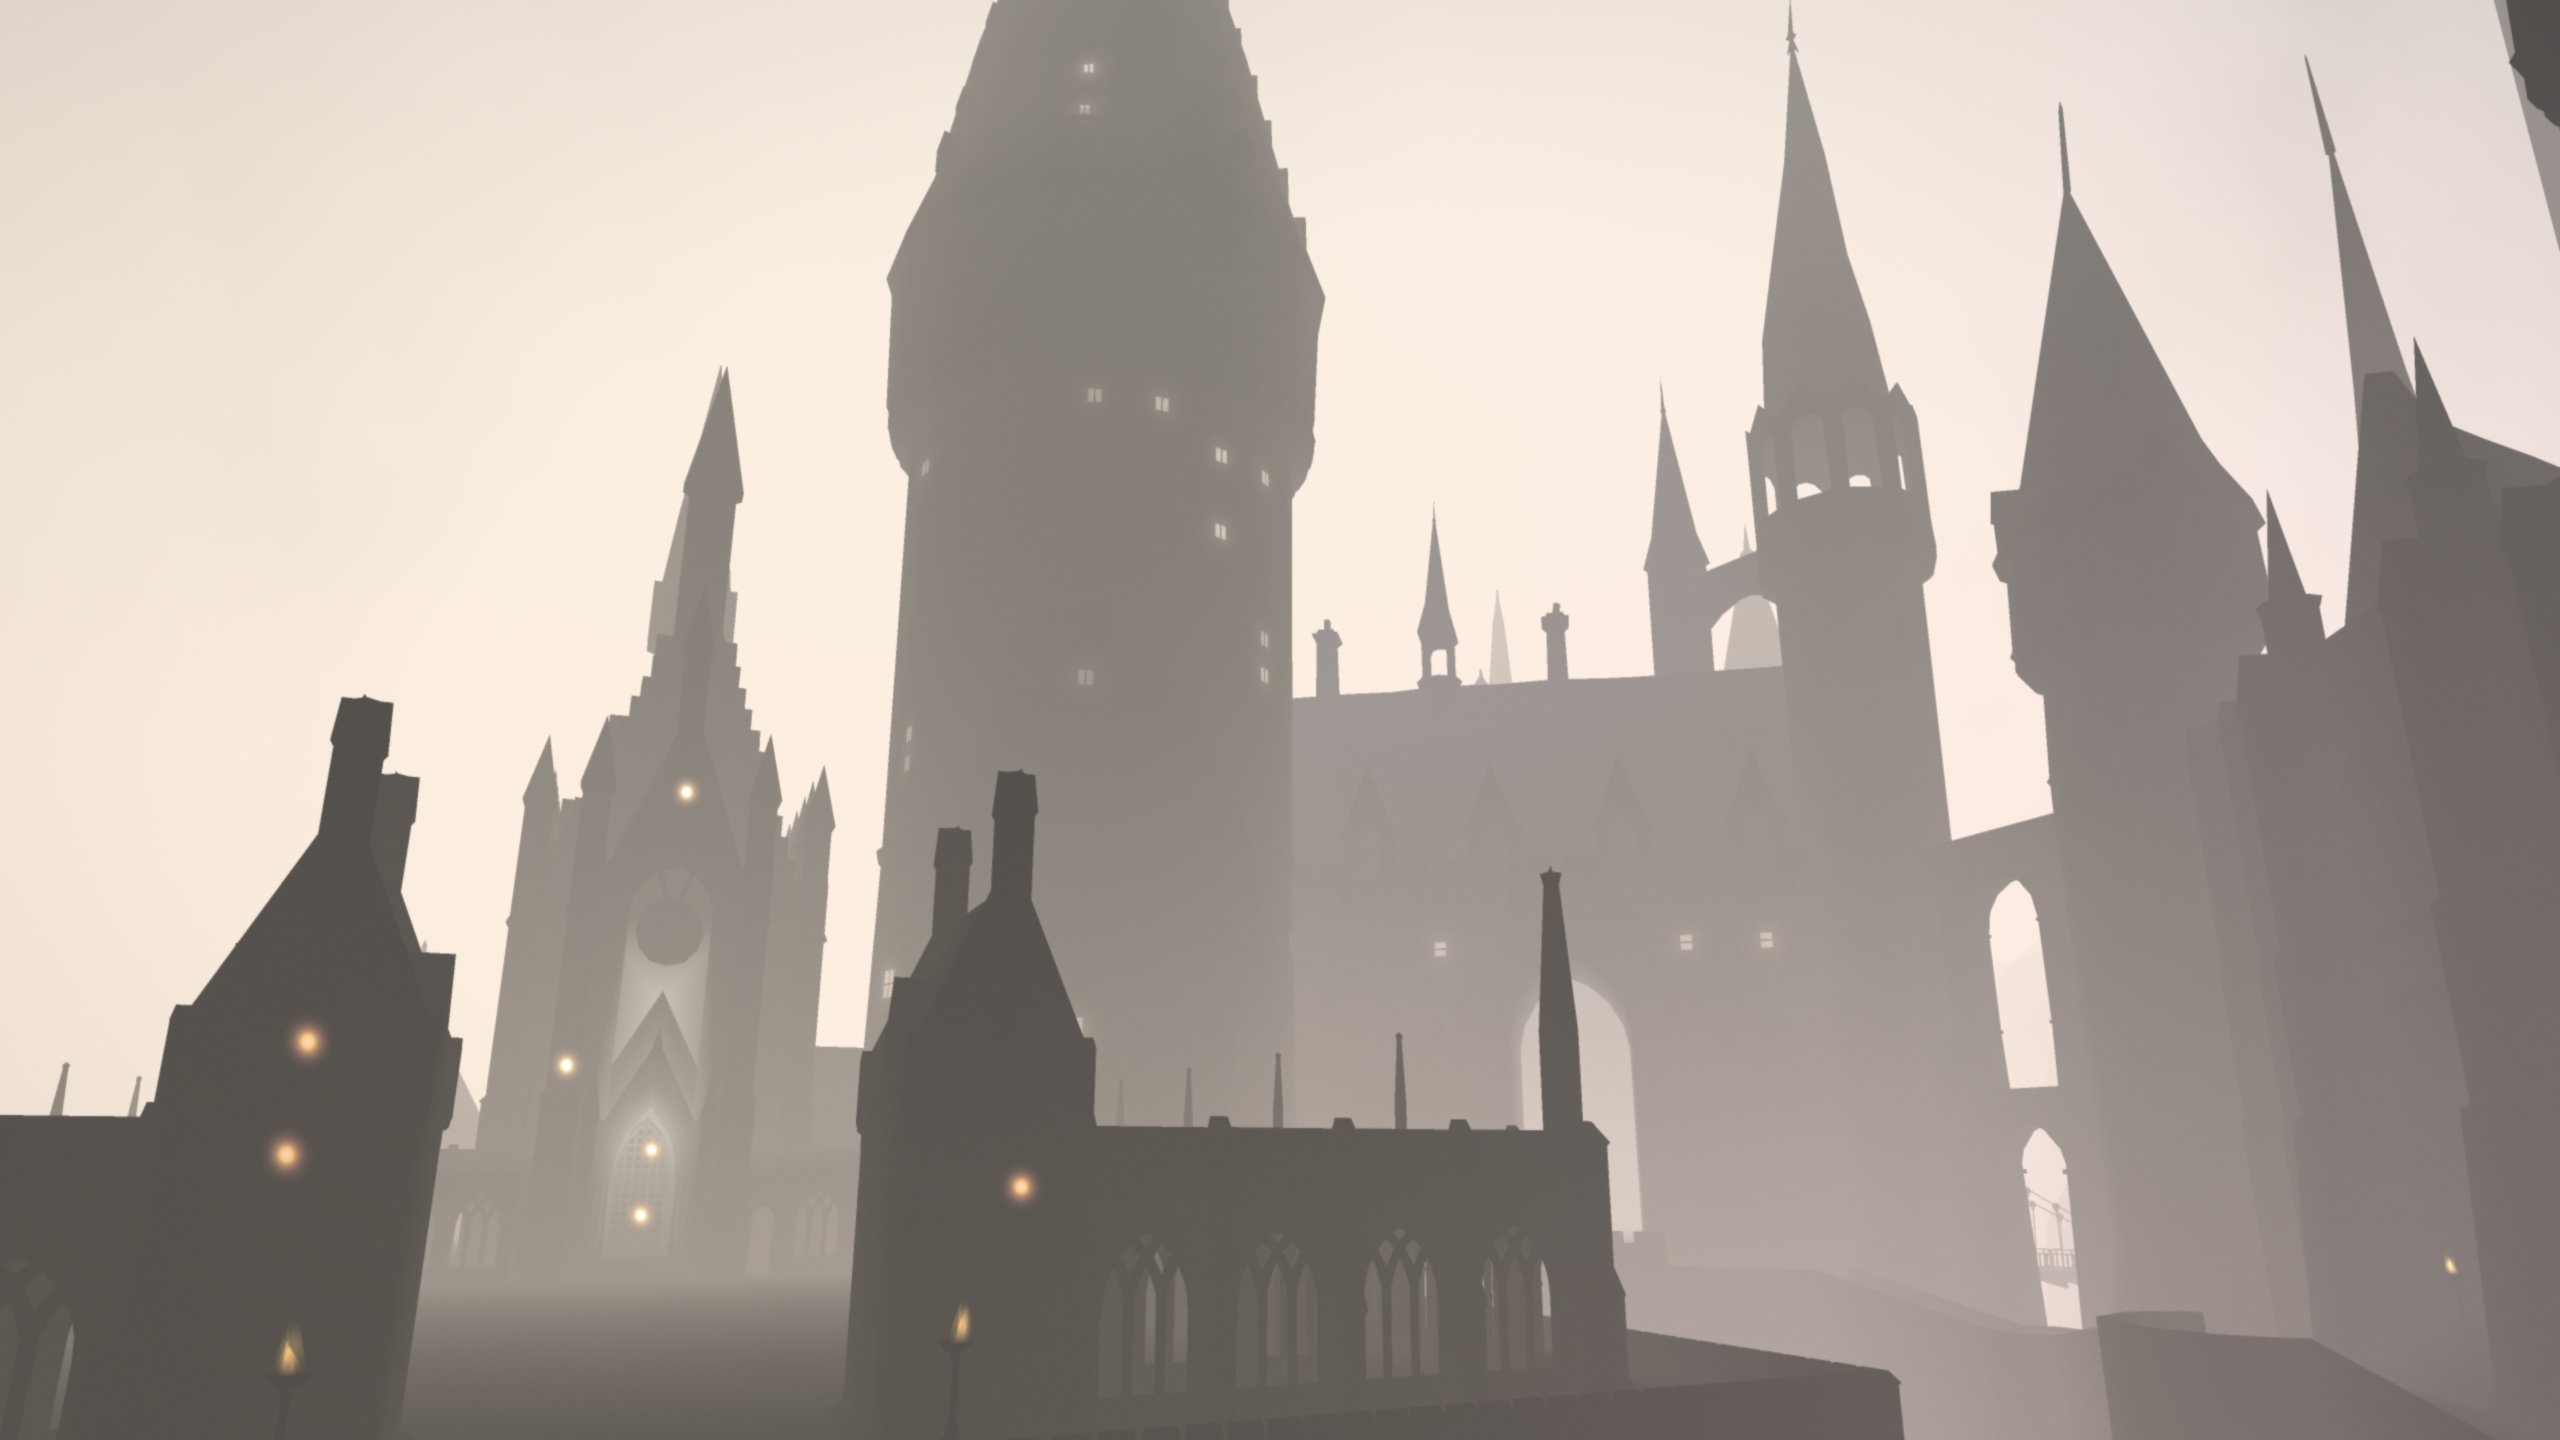 Hogwarts 4k Wallpapers For Your Desktop Or Mobile Screen Free And Easy To Download